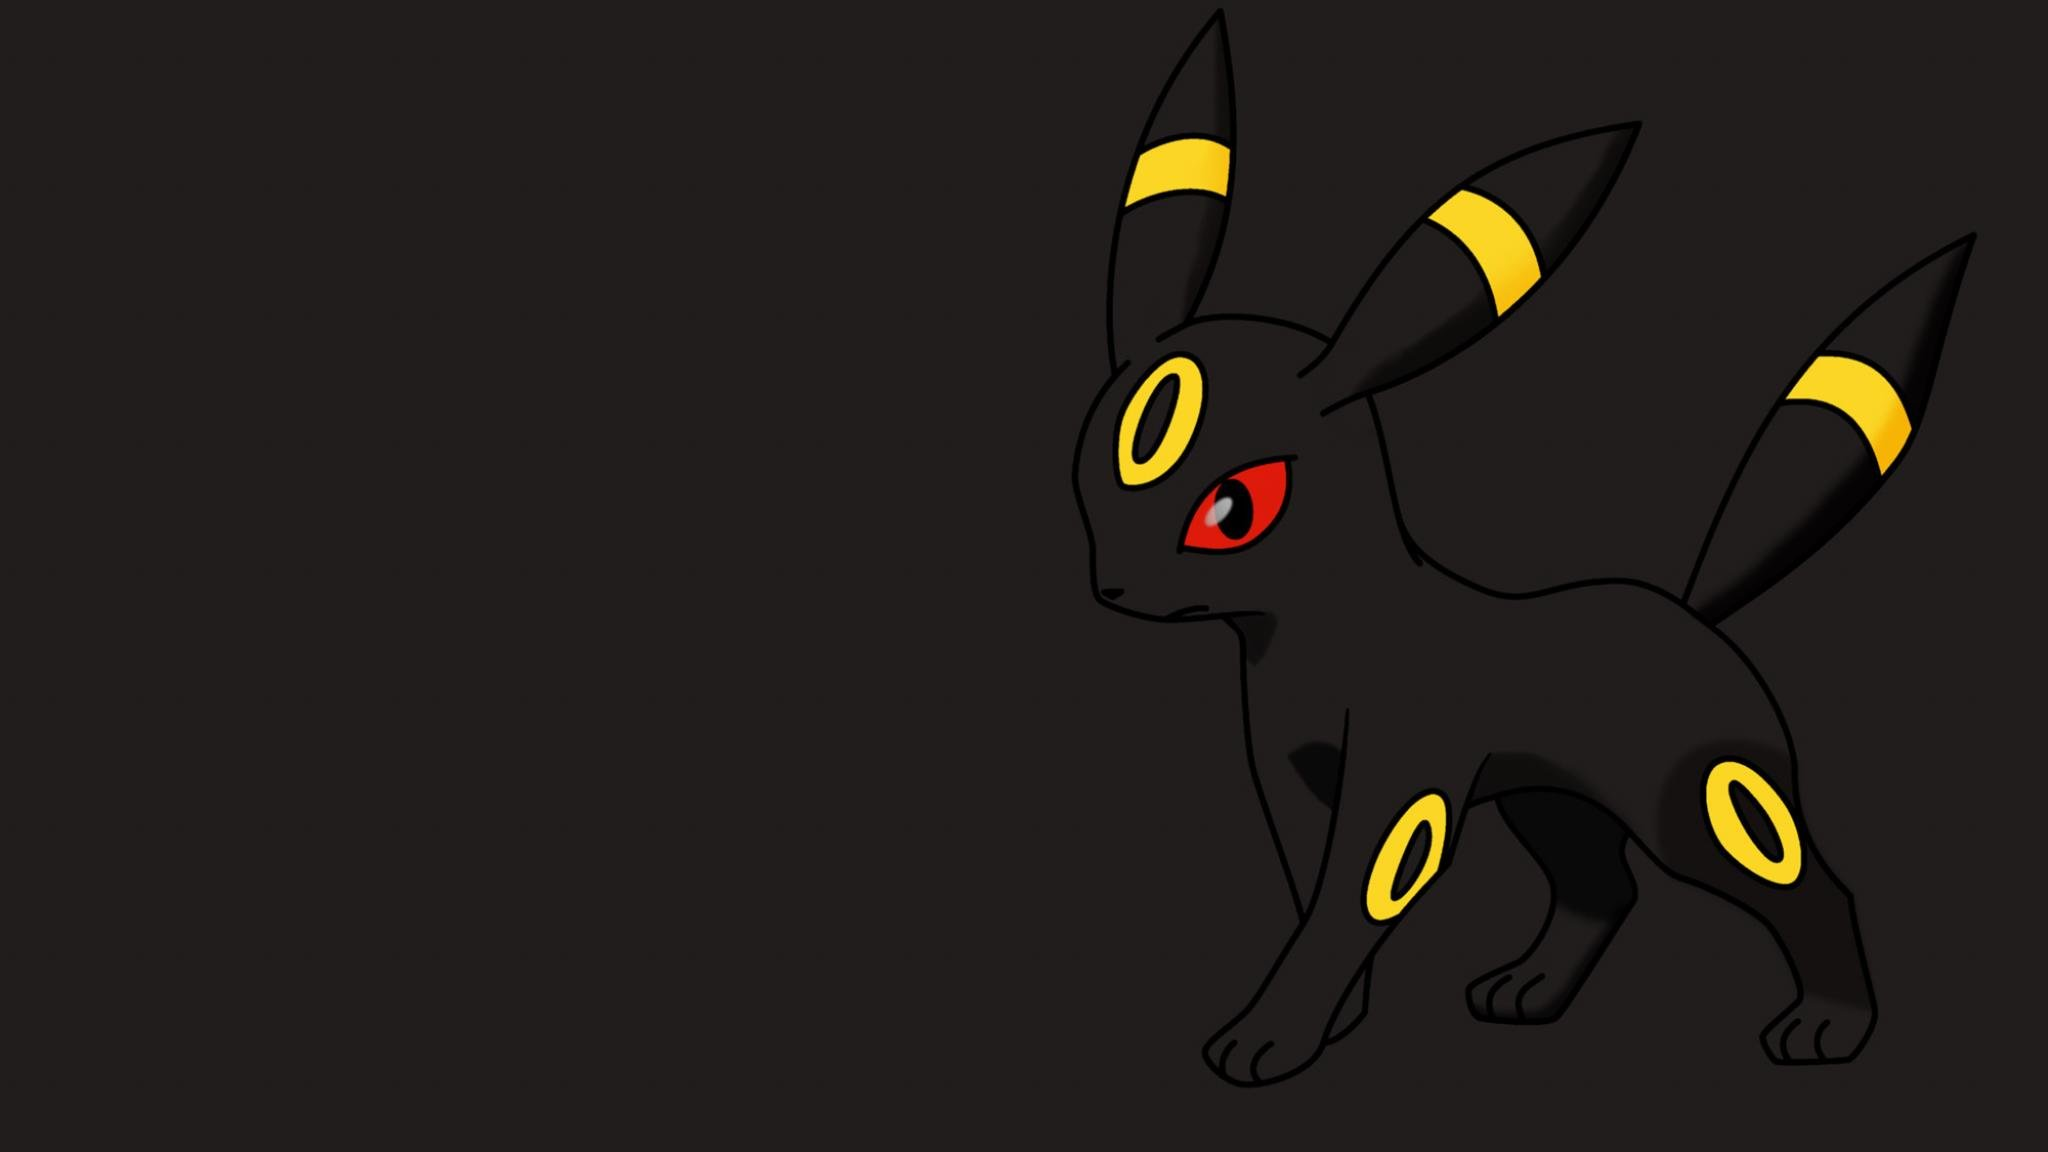 Pokemon Pictures That Are 2048 By 1152 Pixels: Best Umbreon (Pokemon) Wallpaper ID:280325 For High